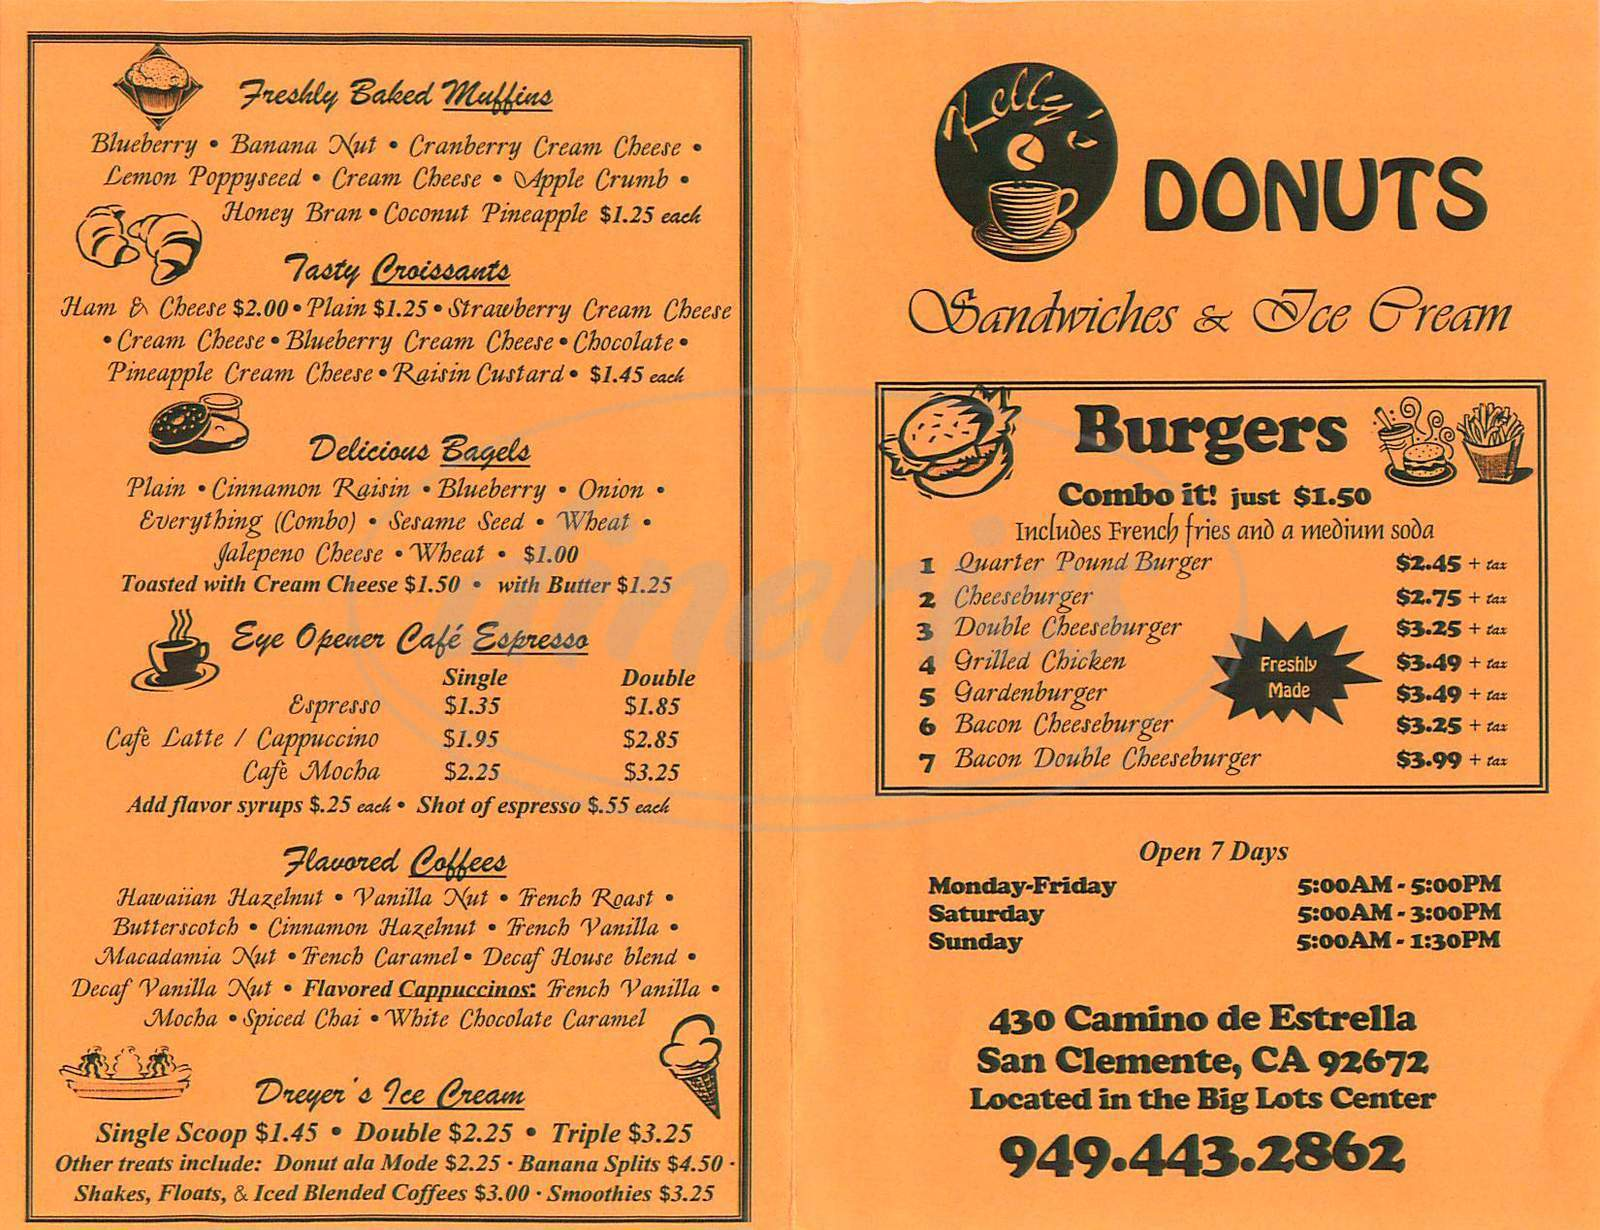 menu for Kelly's Donuts Sandwiches & Ice Cream